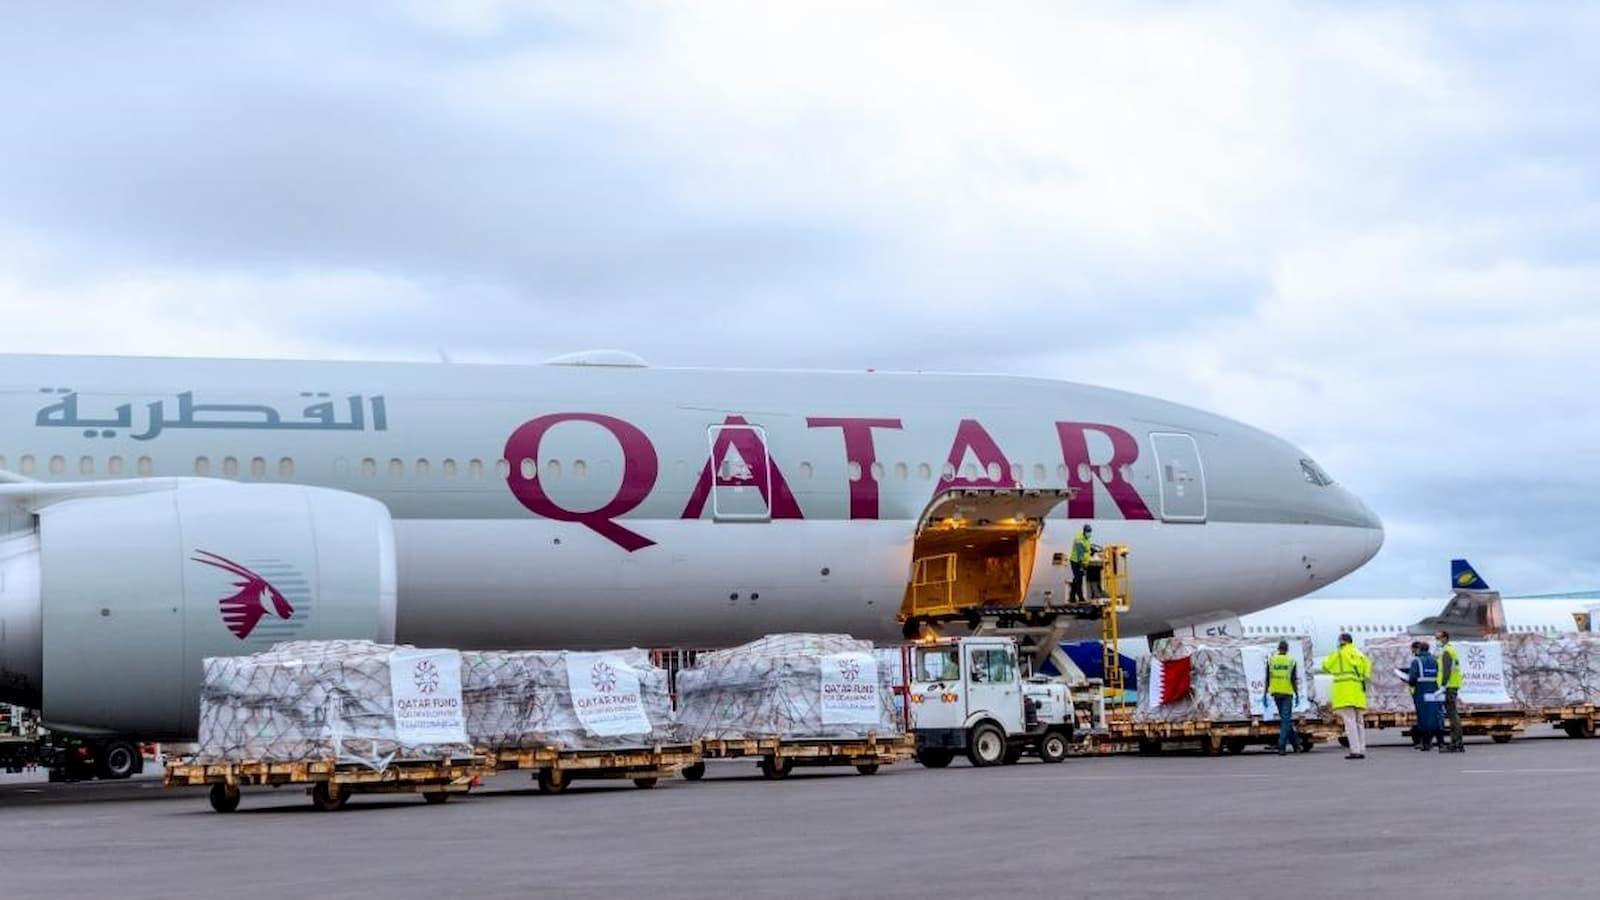 Qatar has provided COVID-19 relief aid to 88 countries: GCO